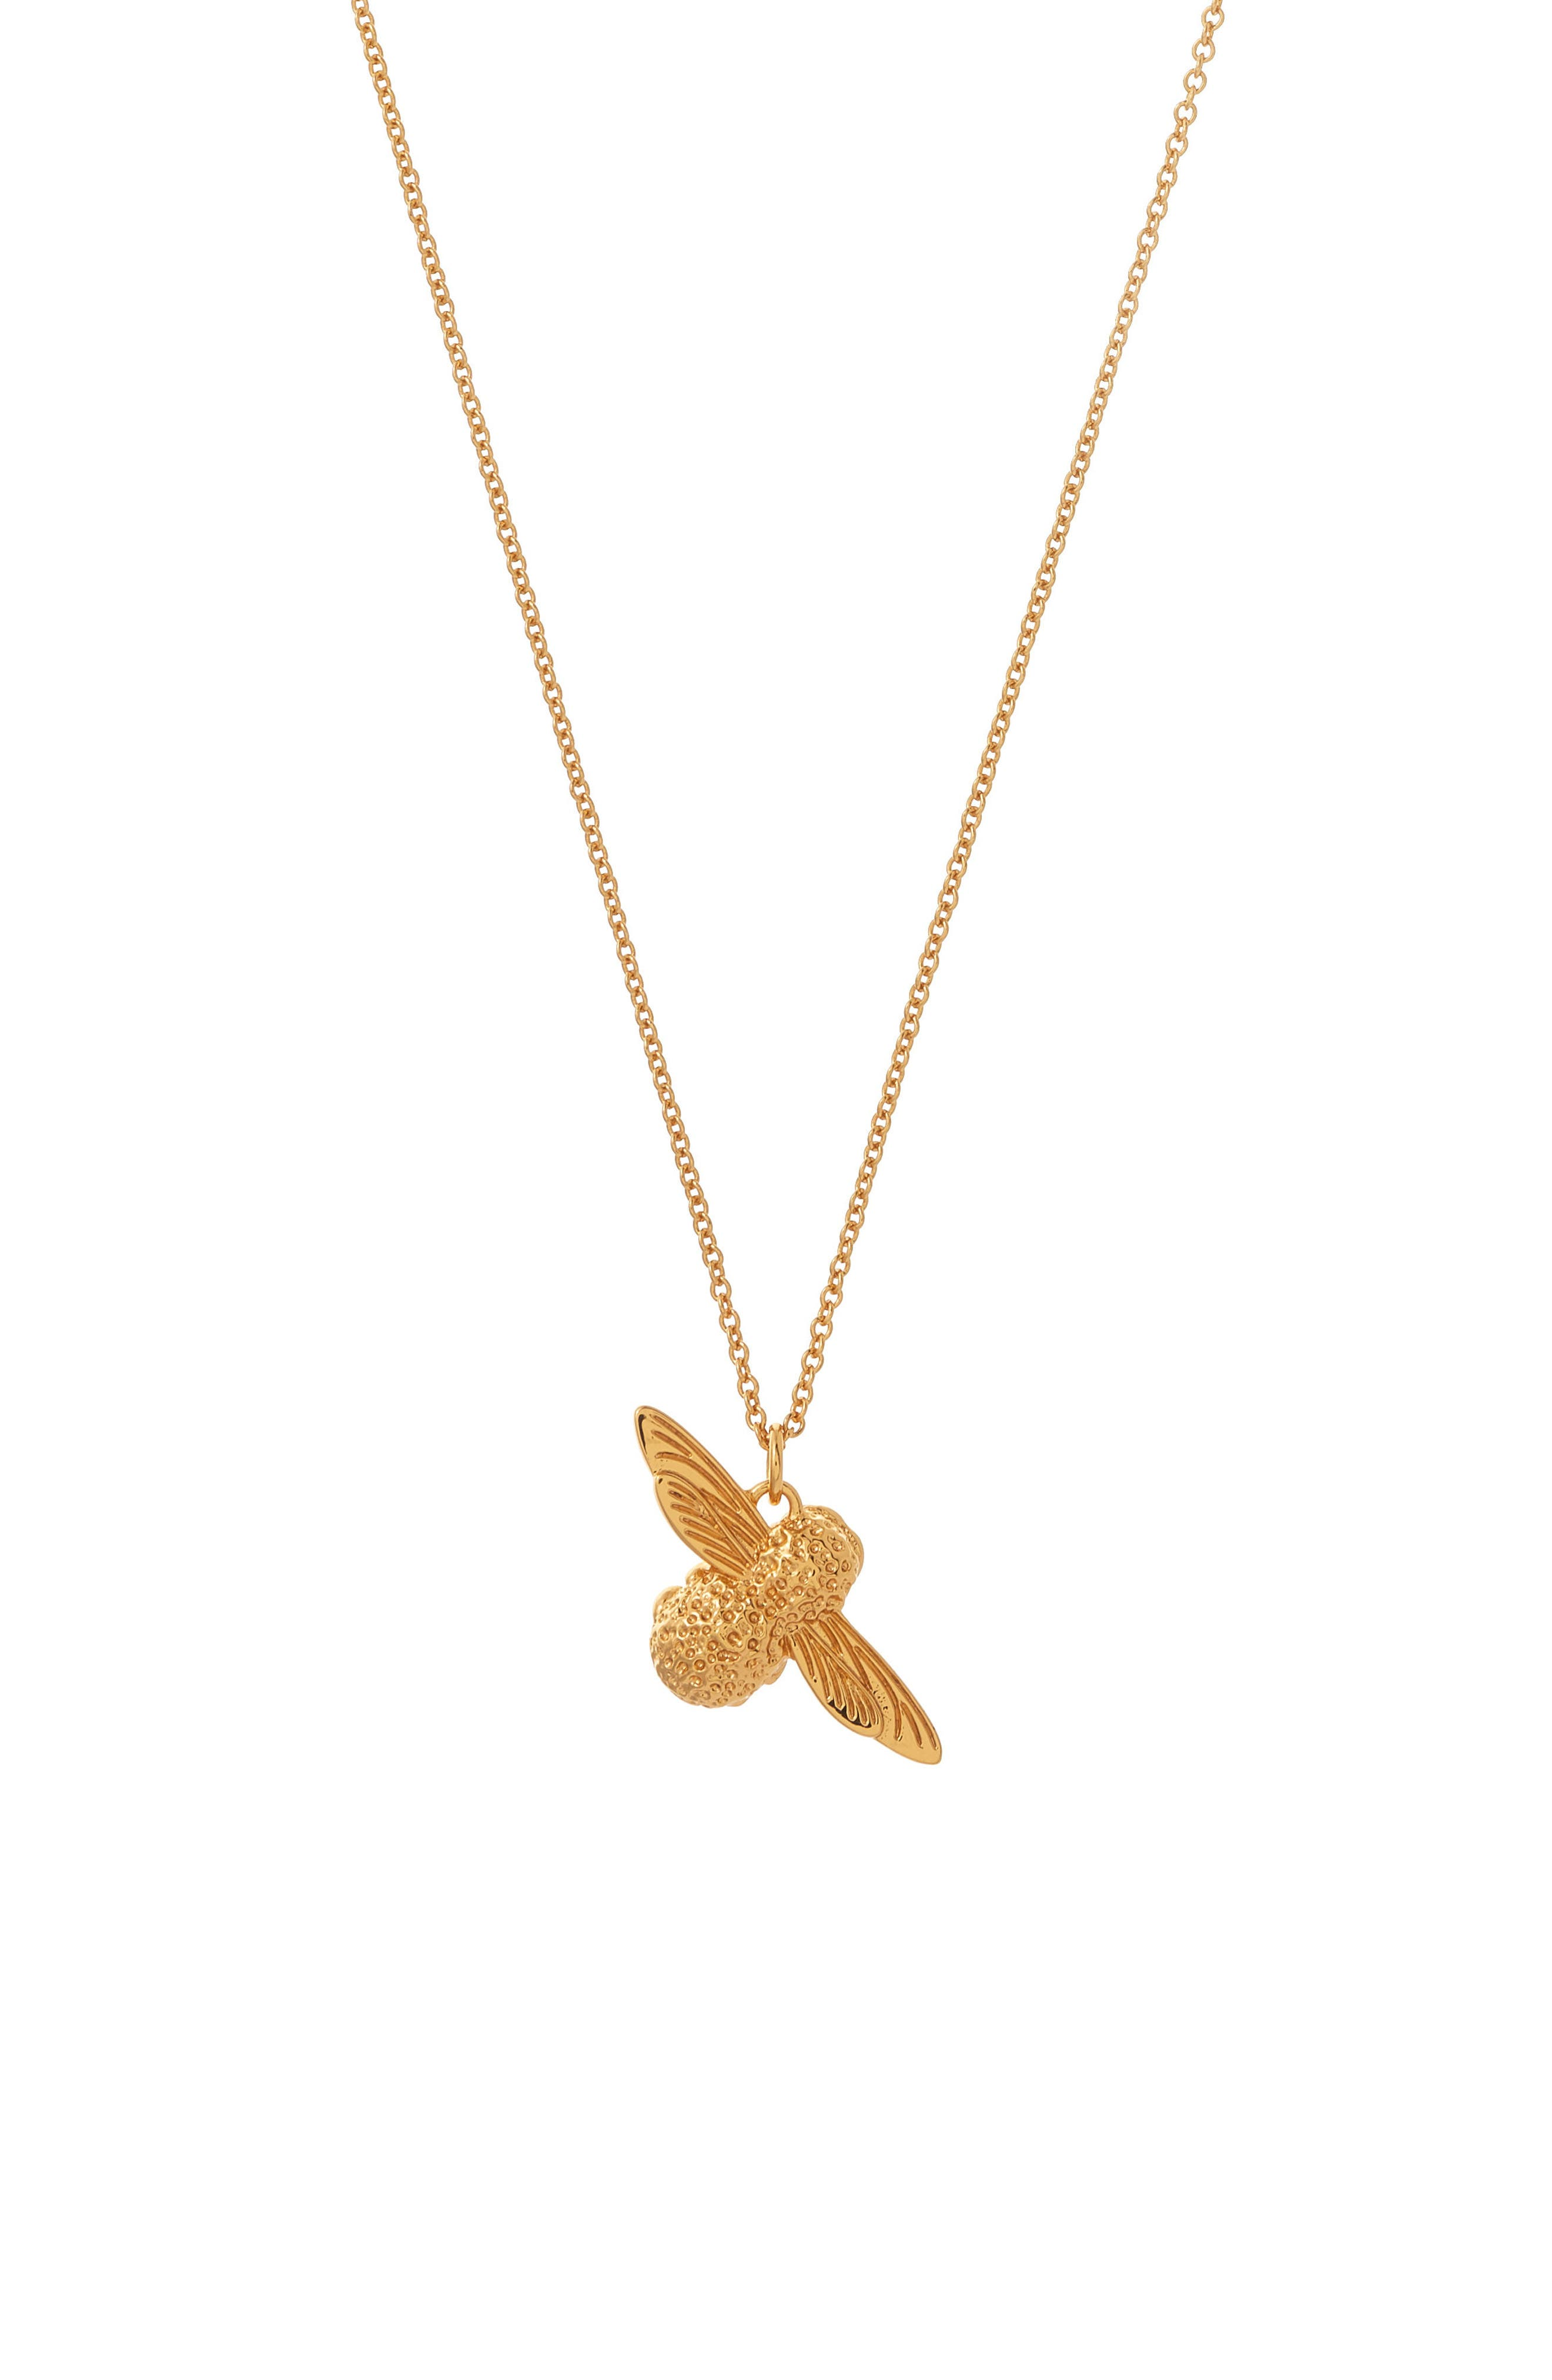 3D BEE PENDANT NECKLACE